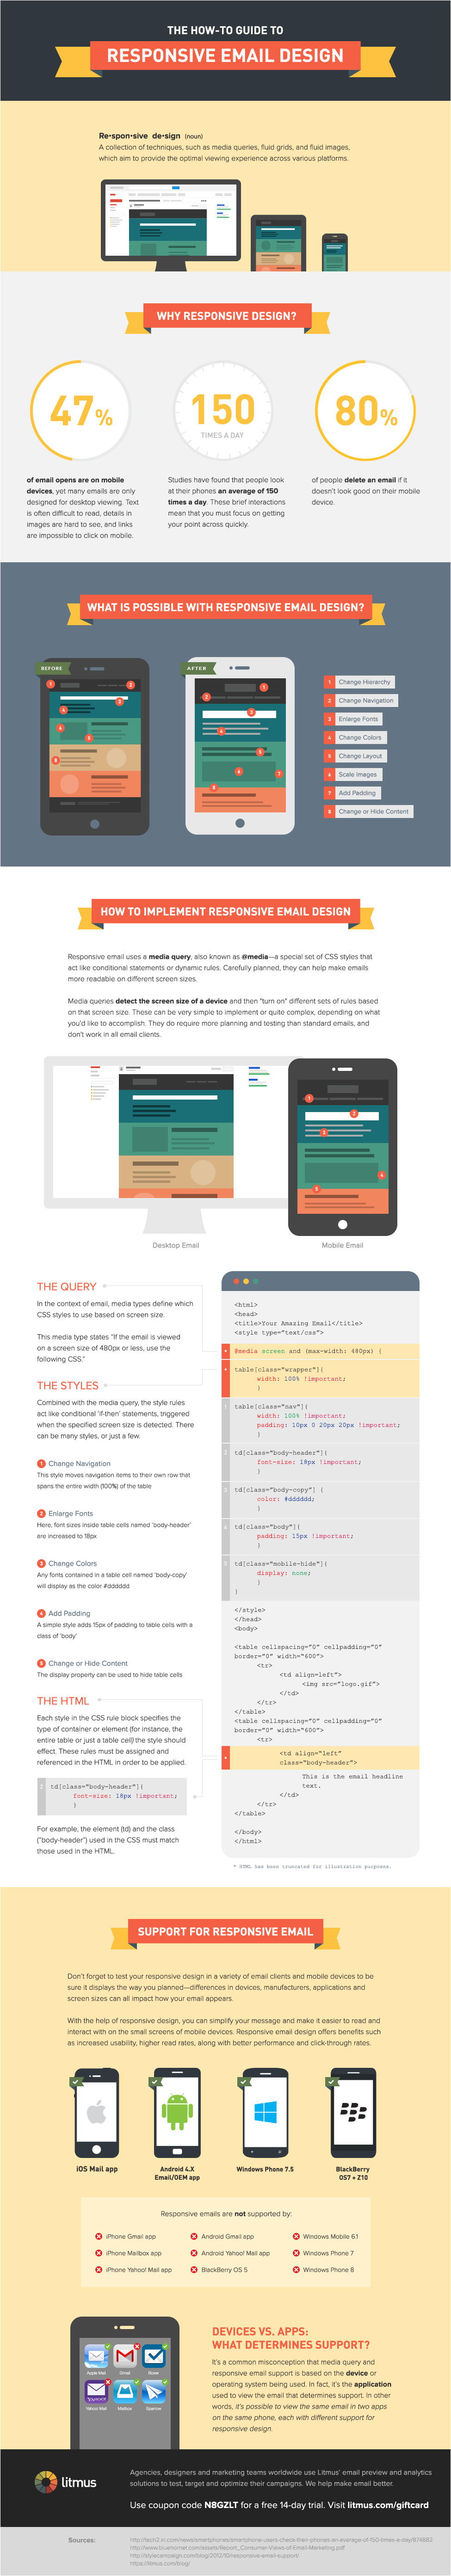 the how to guide to responsive email design infographic